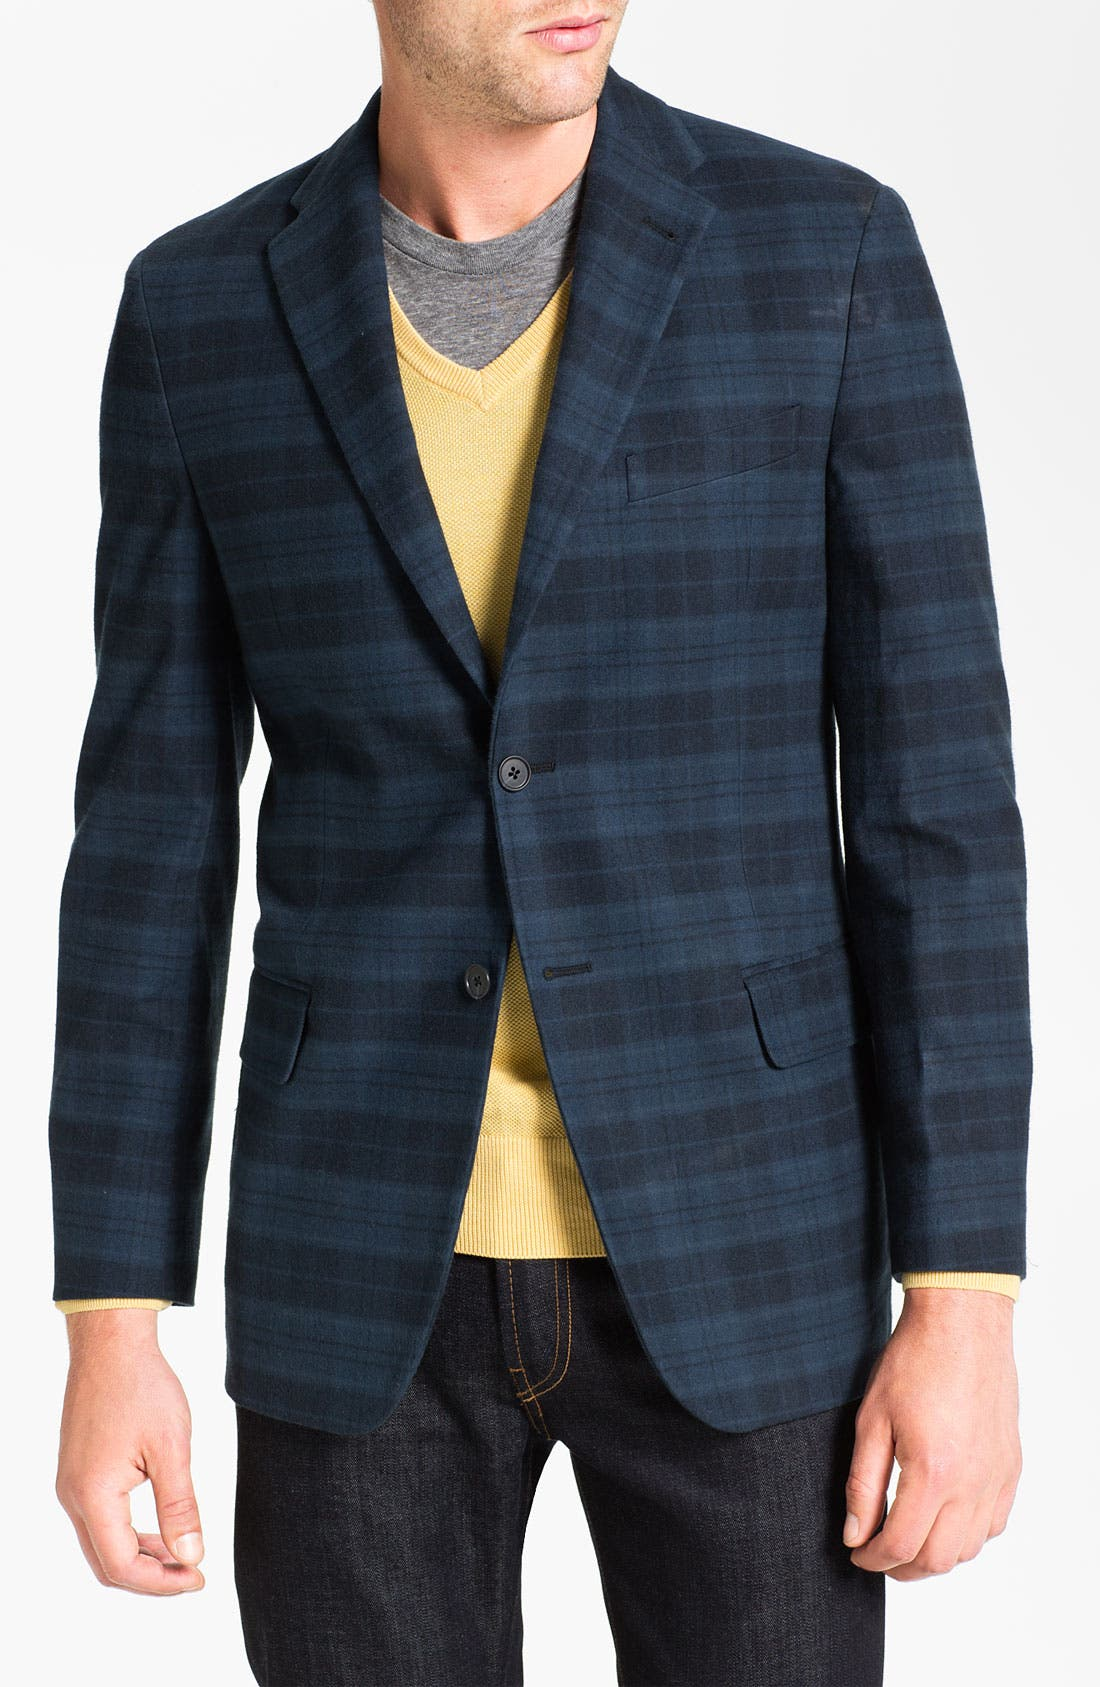 Alternate Image 1 Selected - Joseph Abboud Plaid Cotton Sportcoat